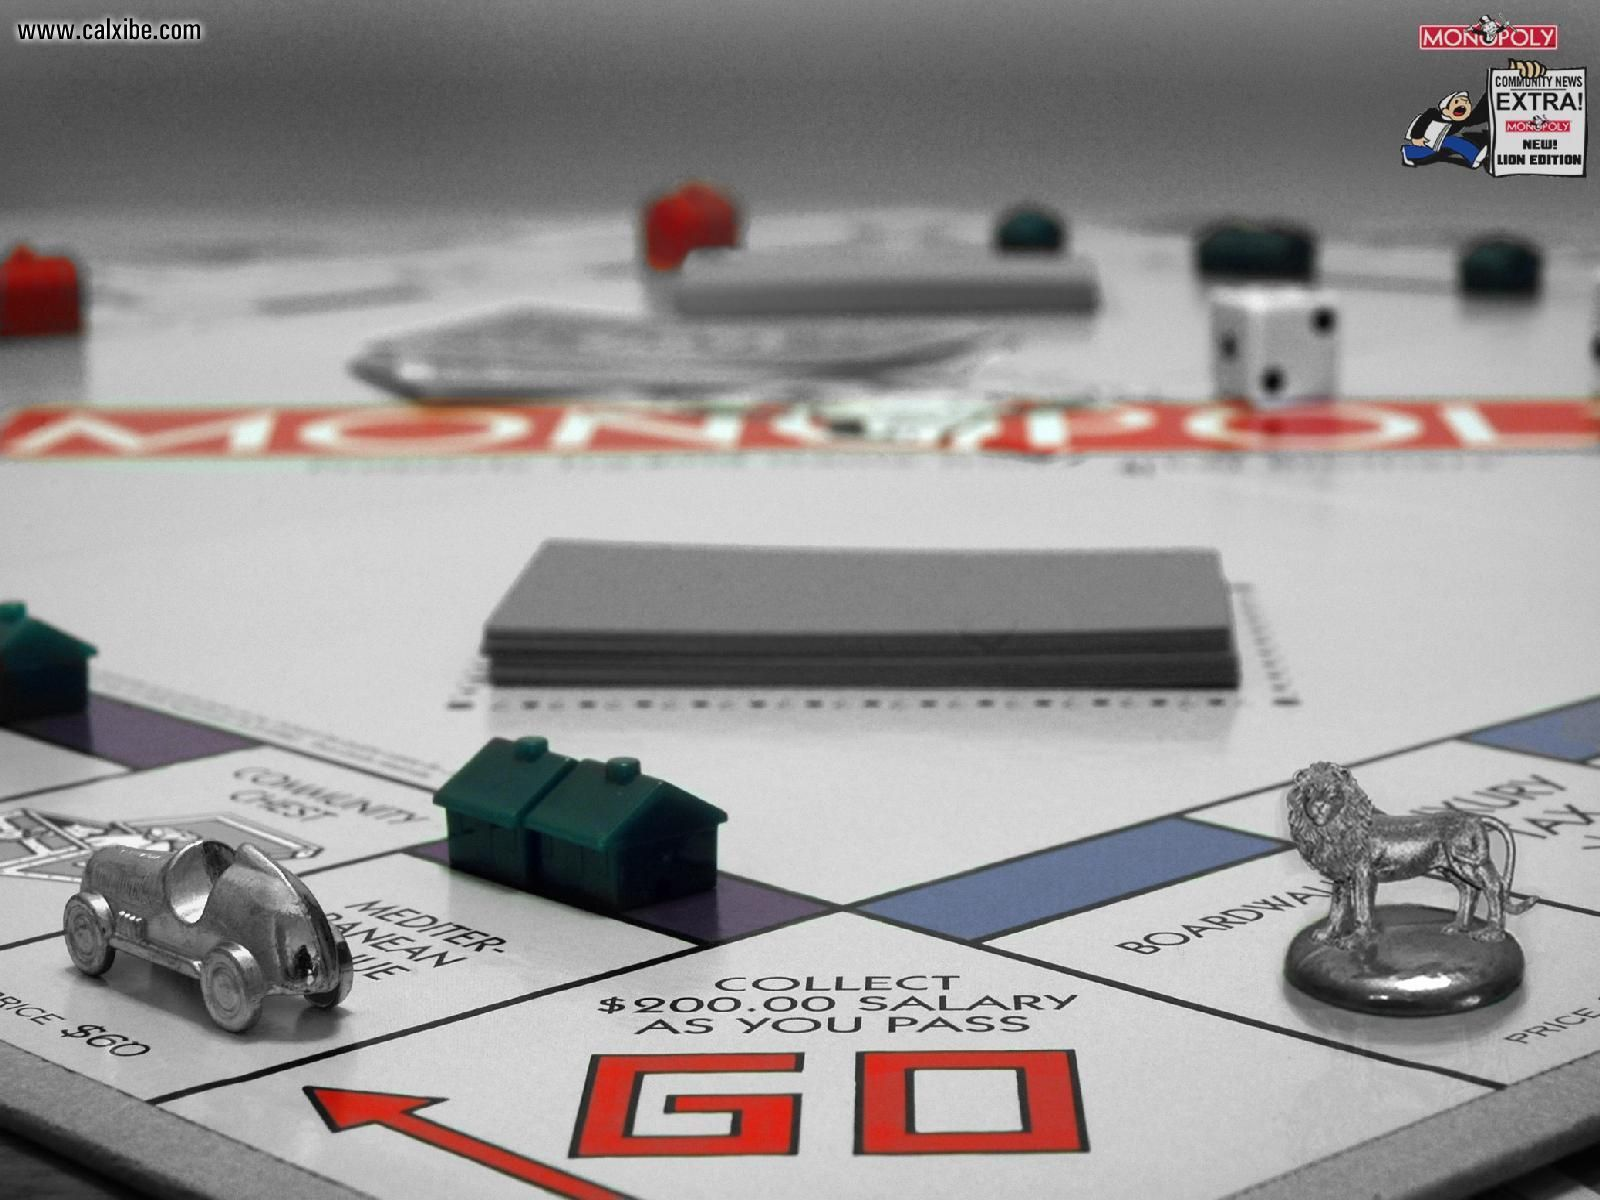 Stunning Monopoly Pictures